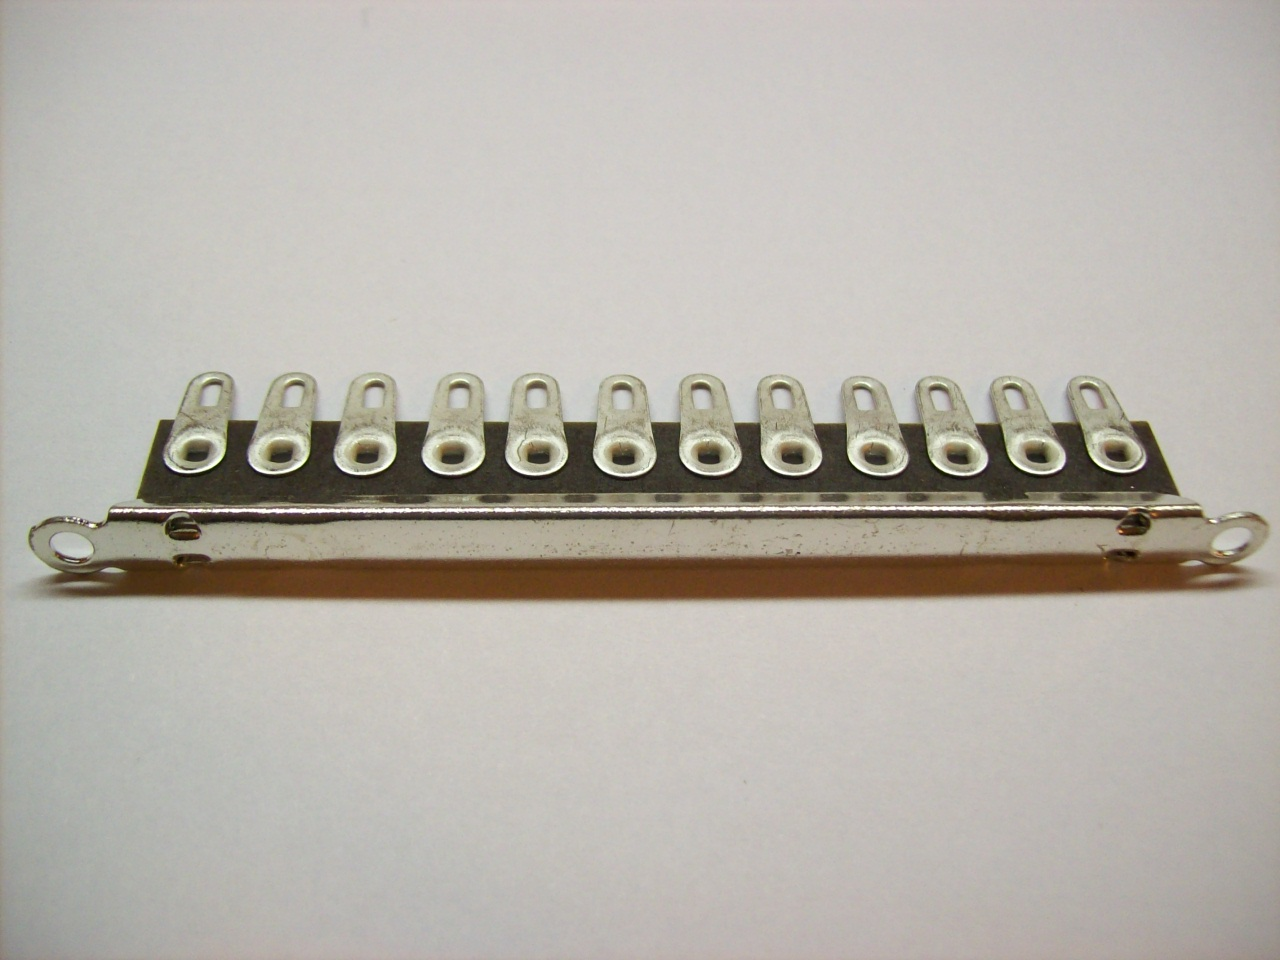 Solder Lug Terminal Strip with Base